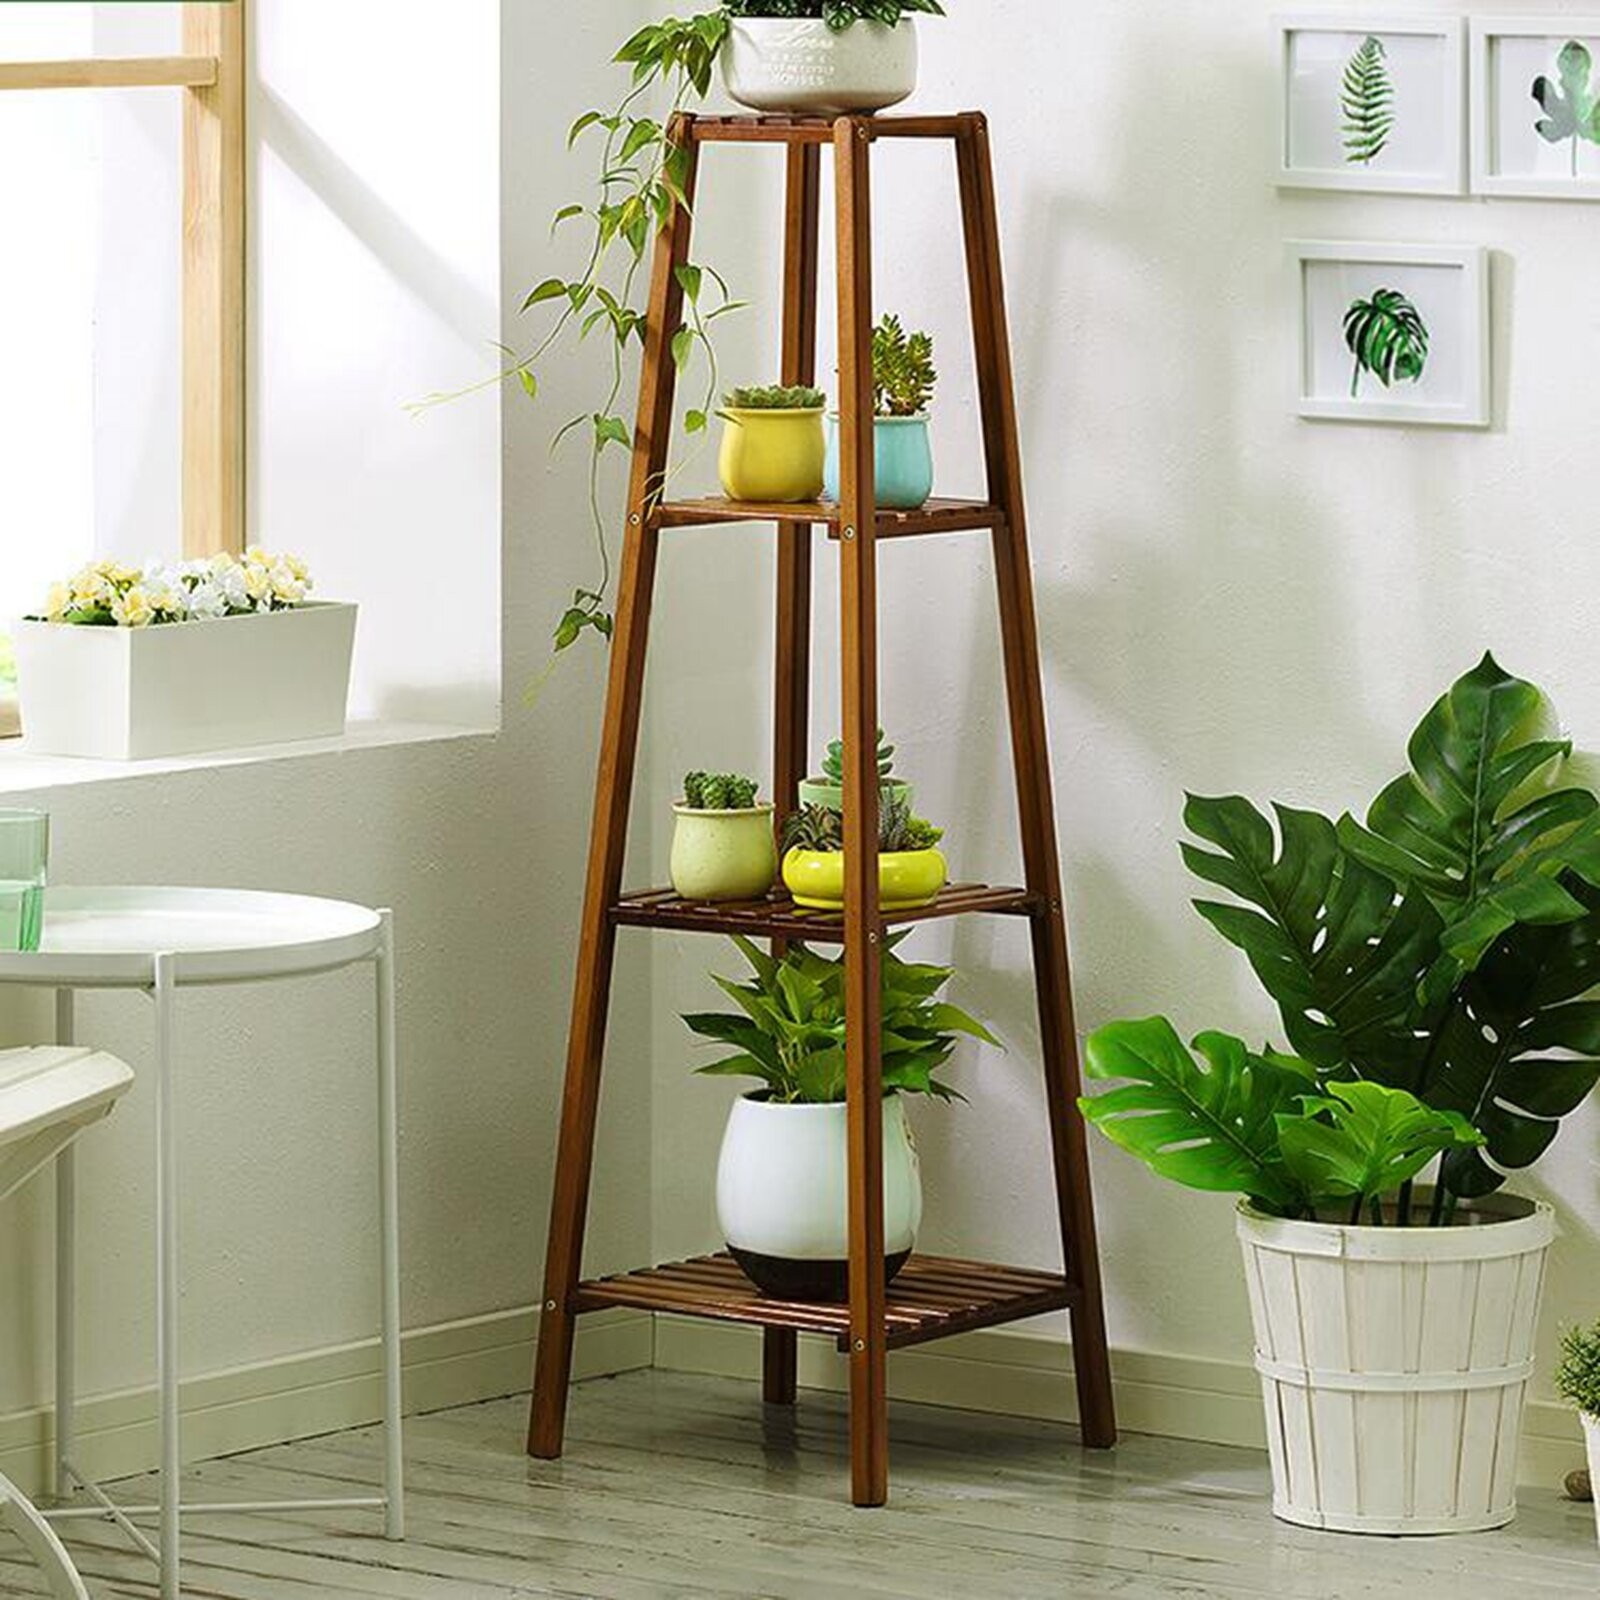 10 Best Plant Stands Tables For 2021 Ideas On Foter